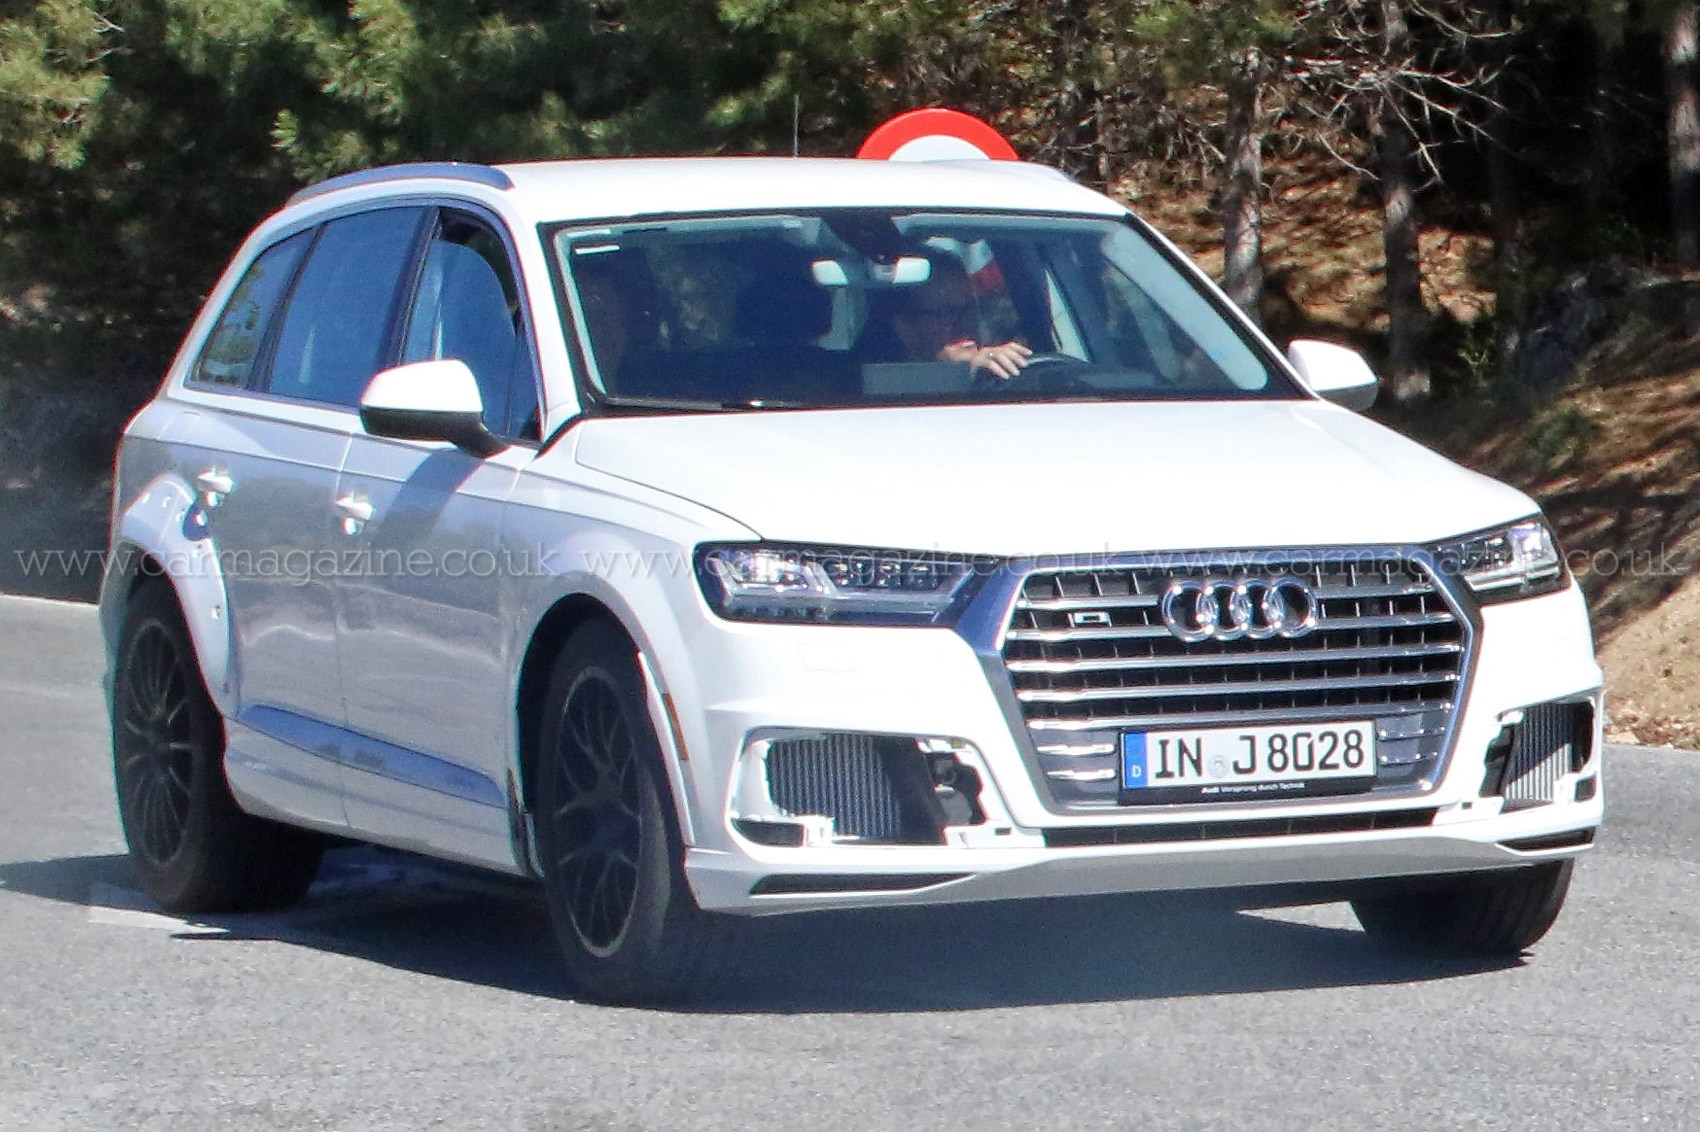 Hyundai Spy Shots >> It's a Q8, mate: first spy shots of Audi's new luxury SUV ...